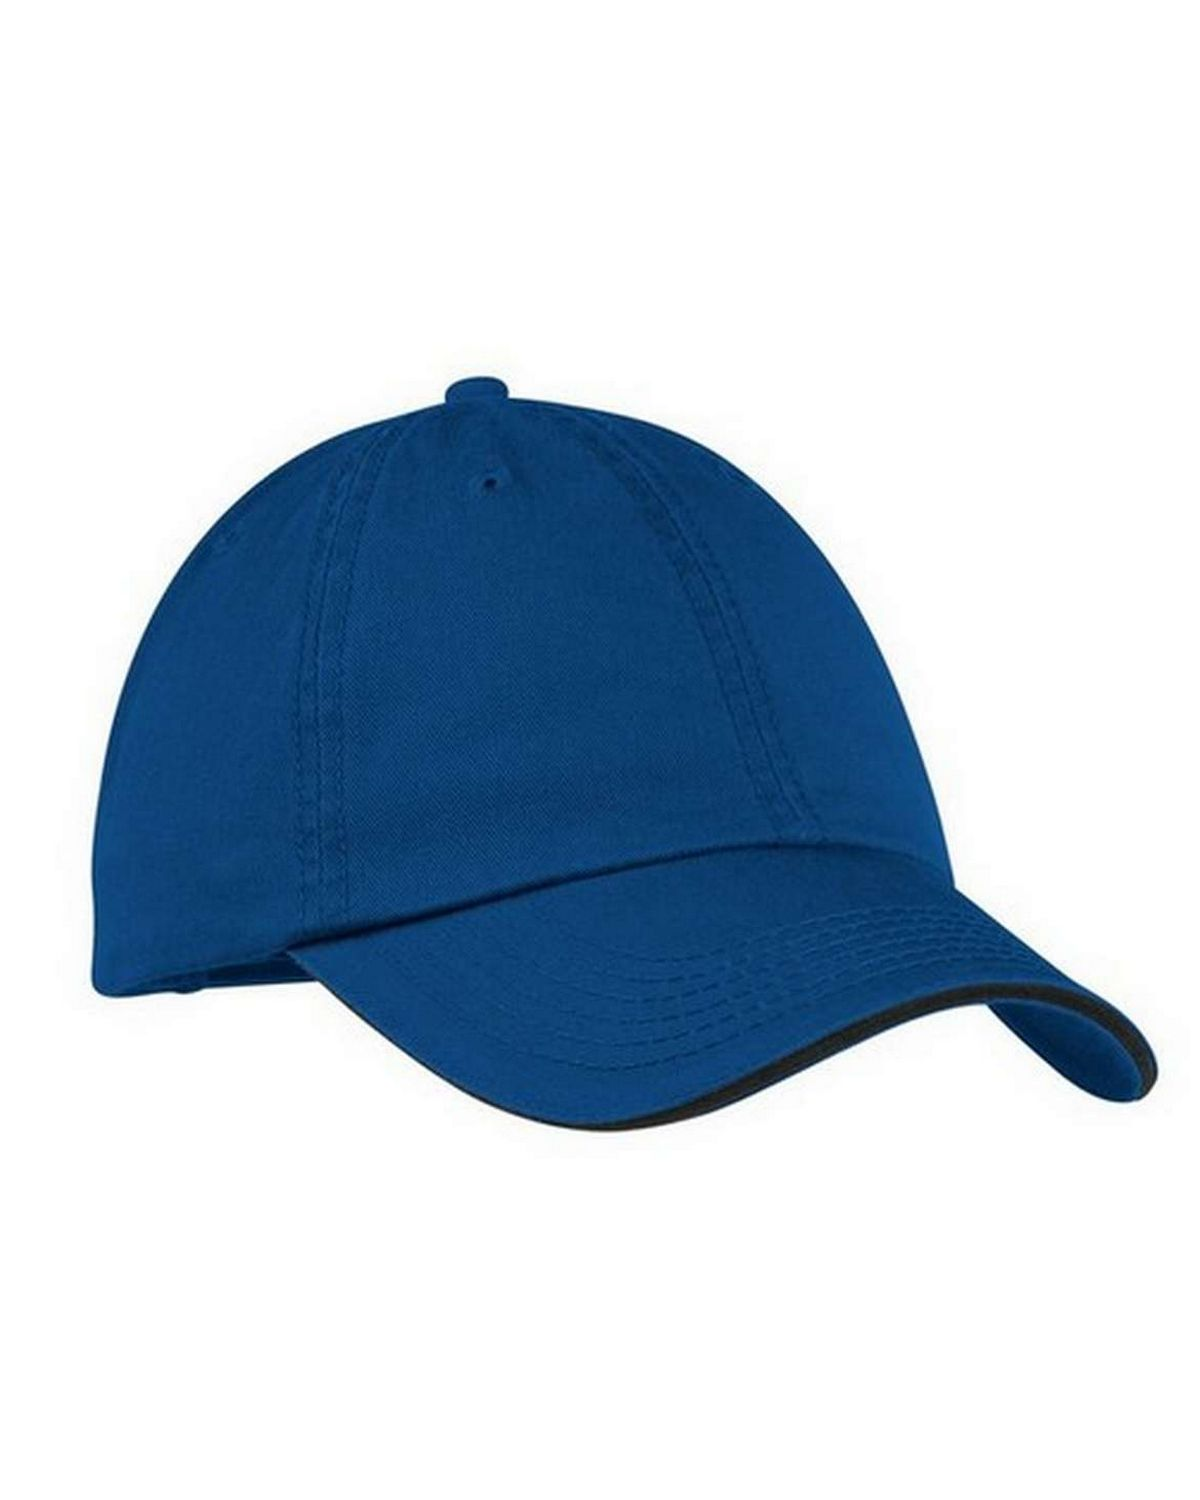 Port & Company CP79 Washed Twill Sandwich Bill Cap